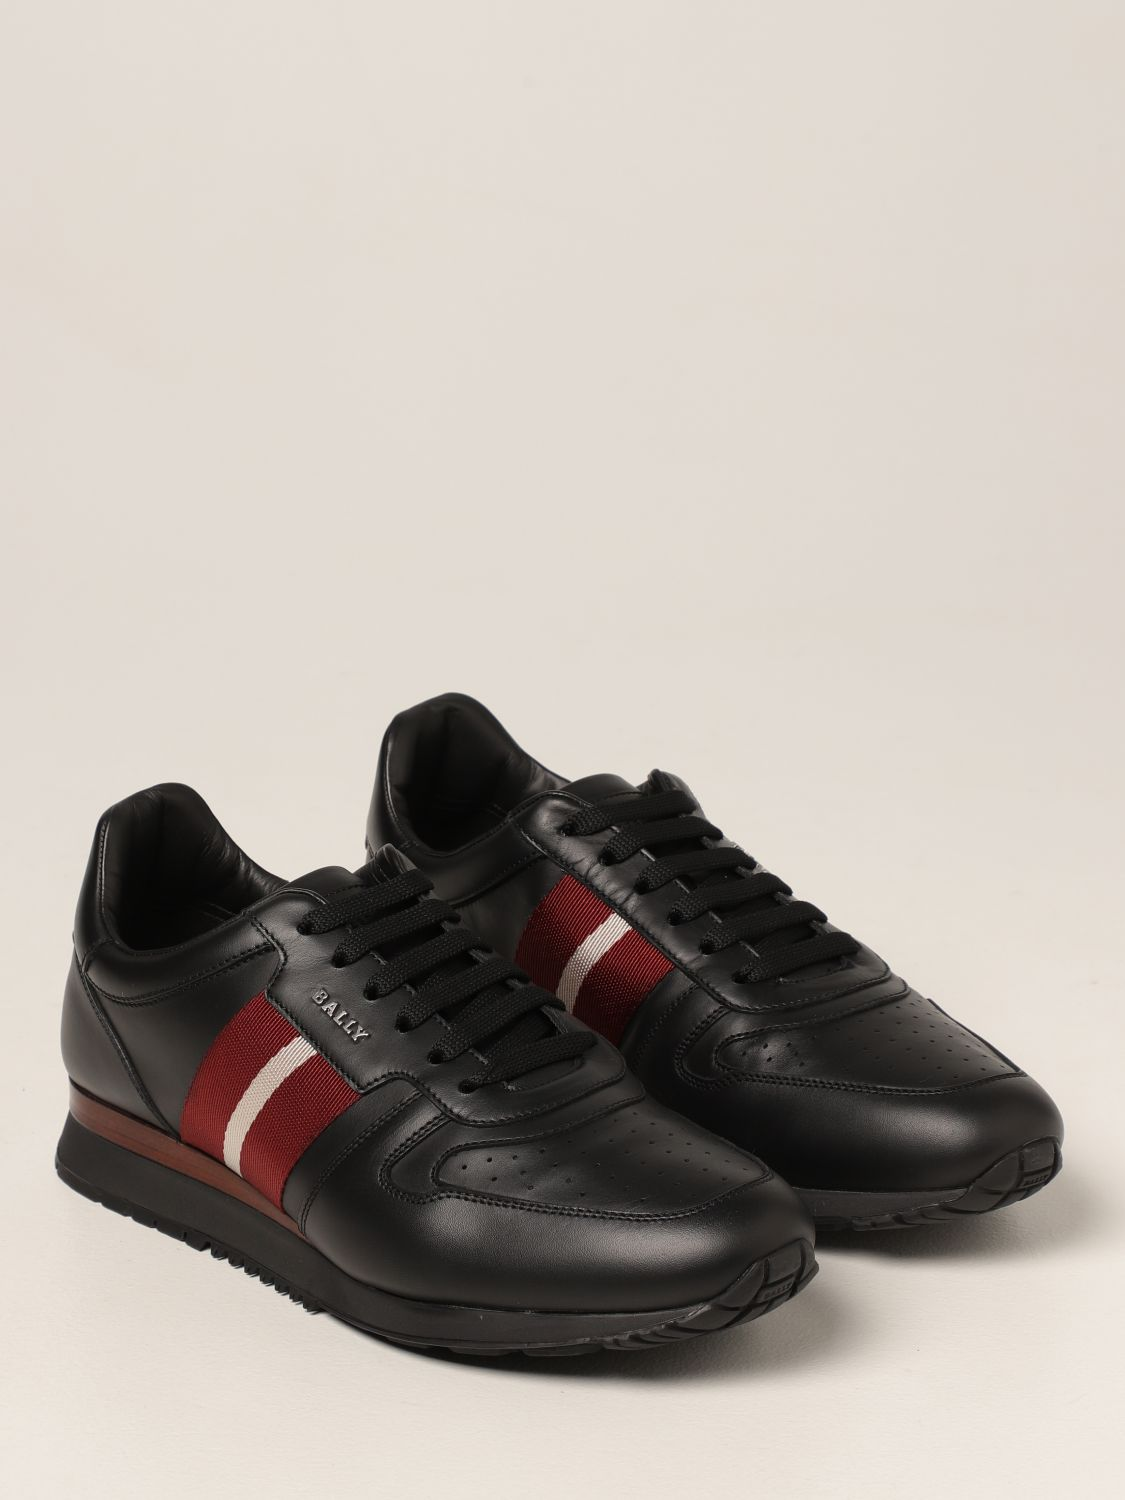 Sneakers Bally: Astel-fo Bally sneakers in leather black 2